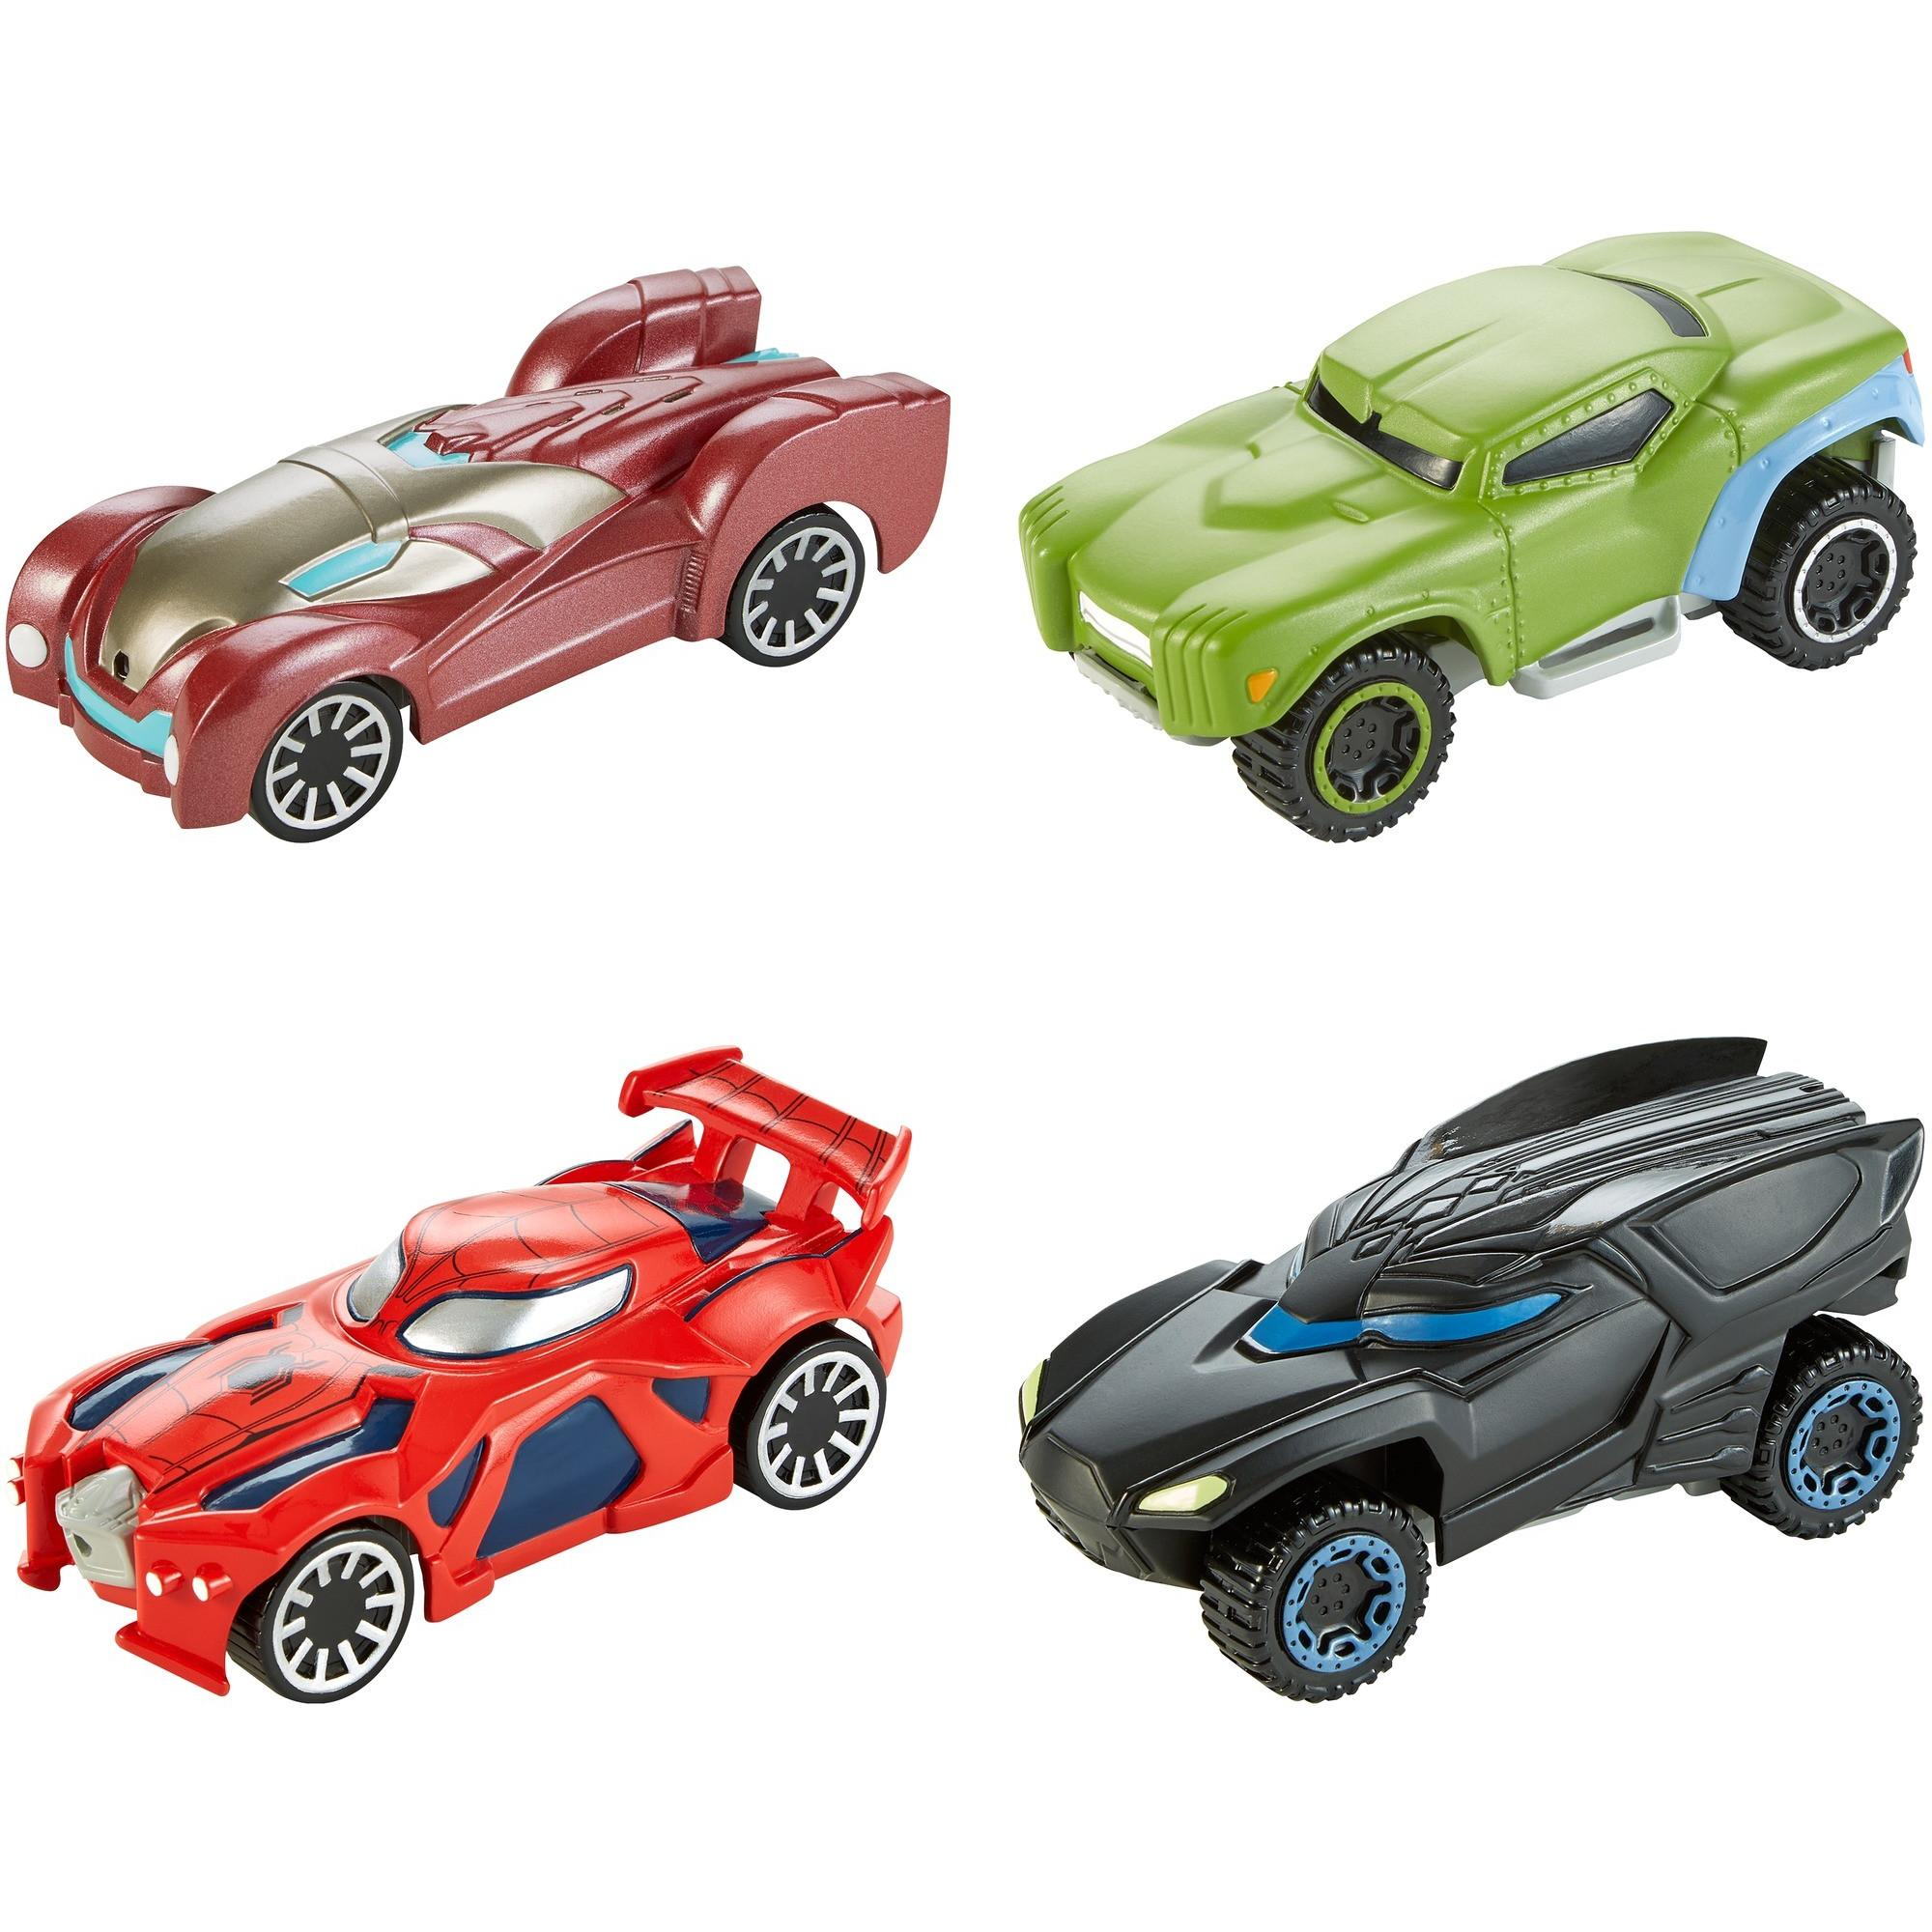 Hot Wheels Marvel Flip Fighters Vehicles For In Air Battles (Styles May Vary)